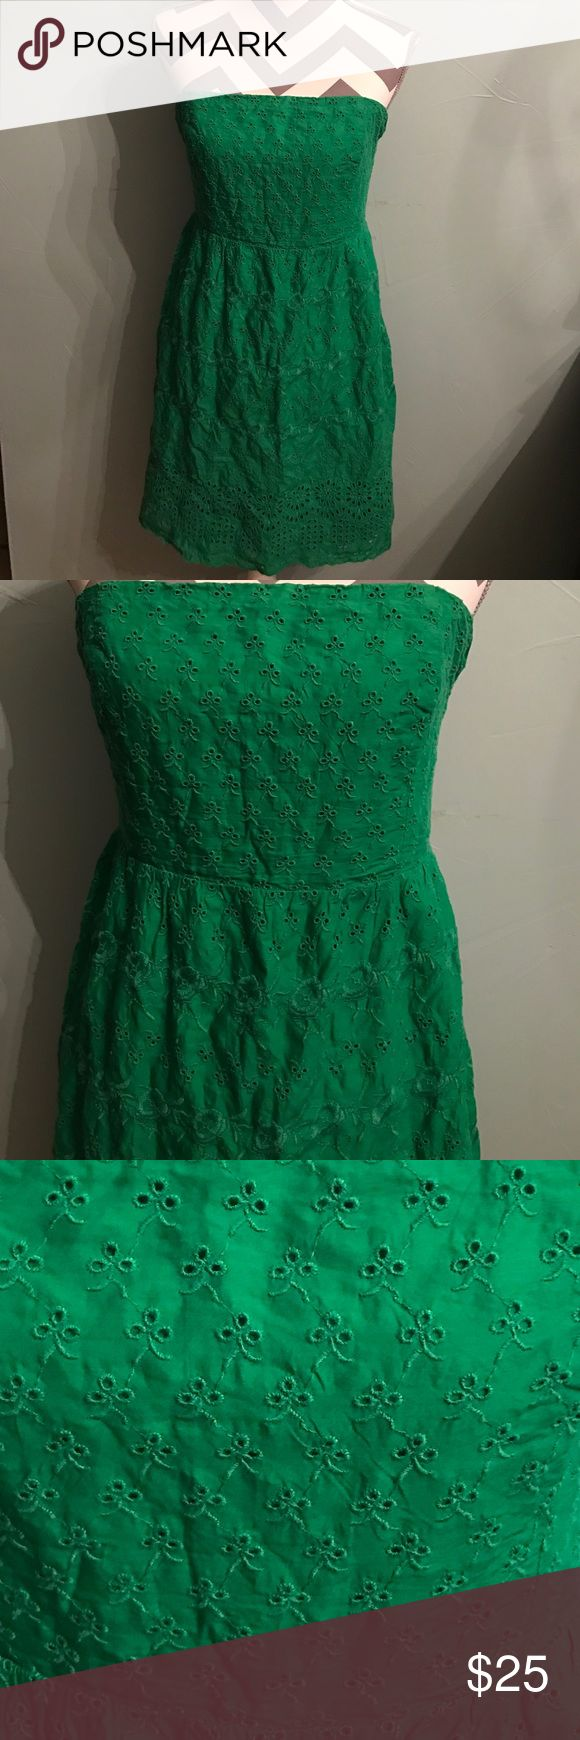 🆕 Sexy strapless green Old navy mini dress 🆕 Sexy strapless green Old navy mini dress PERFECT CONDITION!!! Old Navy Dresses Strapless